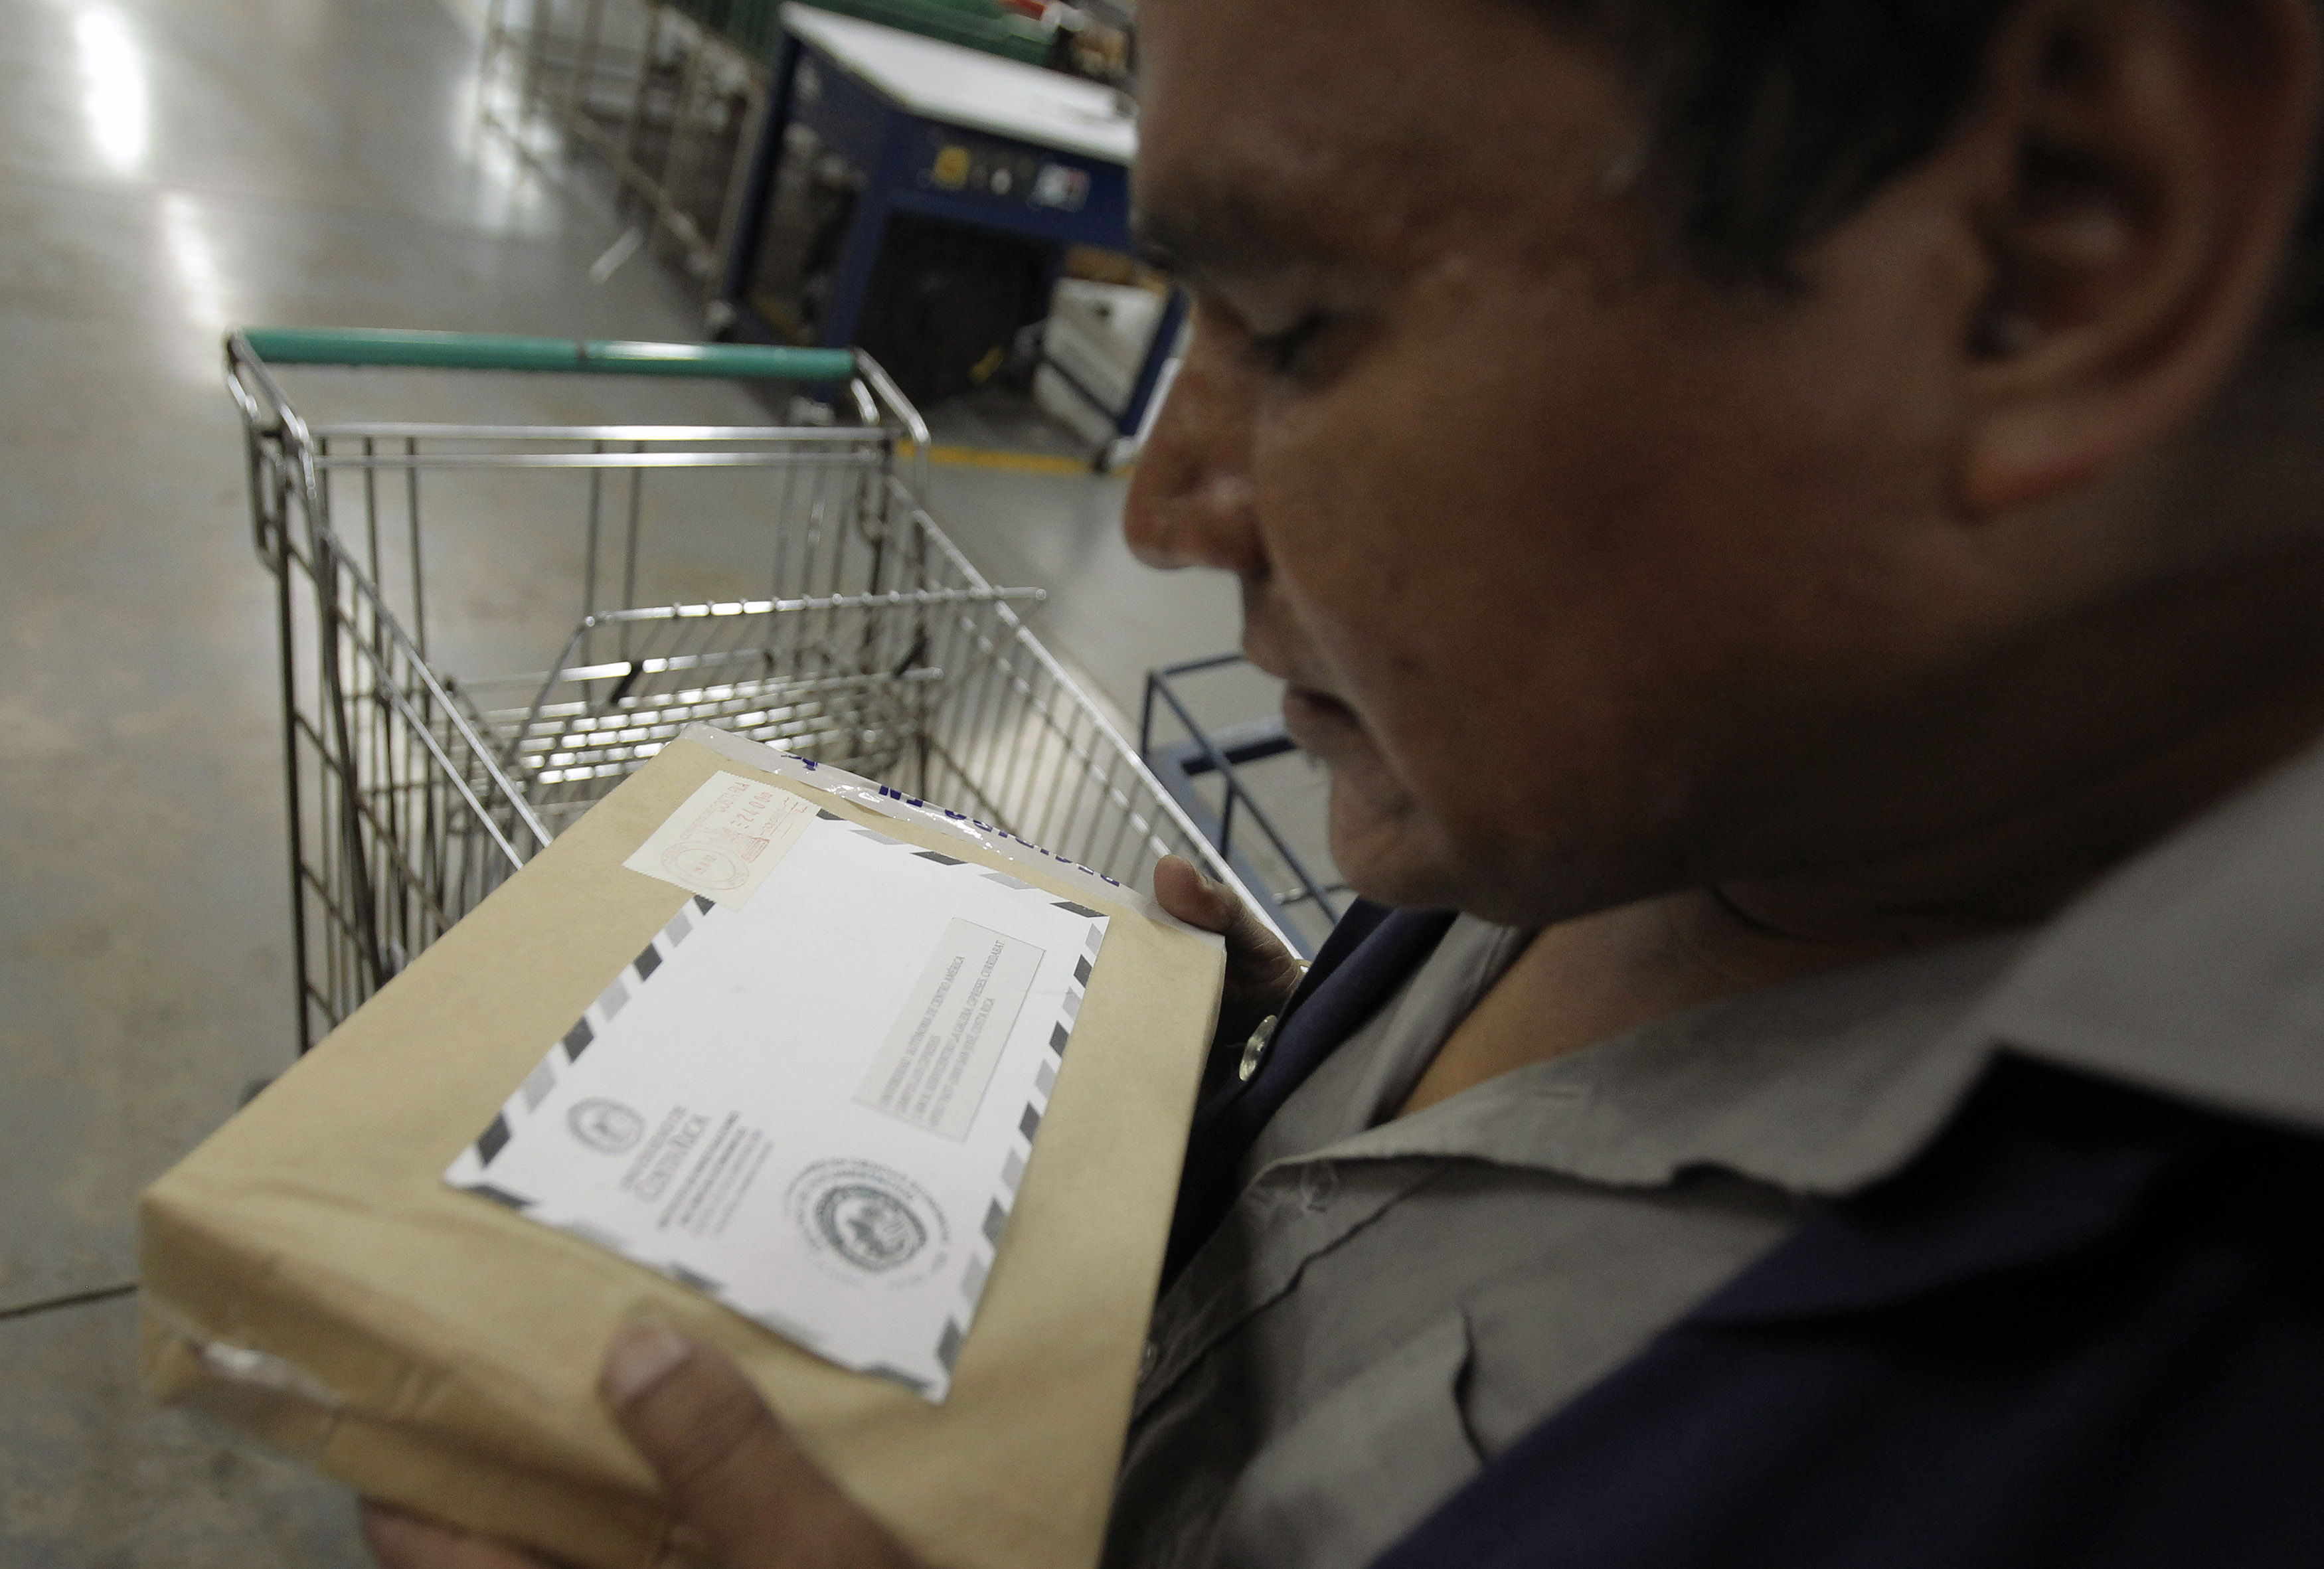 A worker tries to decipher an address on a letter at the post office in San Jose September 27, 2012. Costa Rica, unveiled plans on Thursday to install its first street signs, so residents will not have to cite local landmarks like fast-food chains or gas stations when giving directions. Municipal workers will install about 22,000 signs and plaques on street corners in the city, home to 1.4 million people, where the current informal system is tolerated by residents, but creates headaches for visitors and the post office. REUTERS/Juan Carlos Ulate (COSTA RICA - Tags: SOCIETY POLITICS) - RTR38ILQ